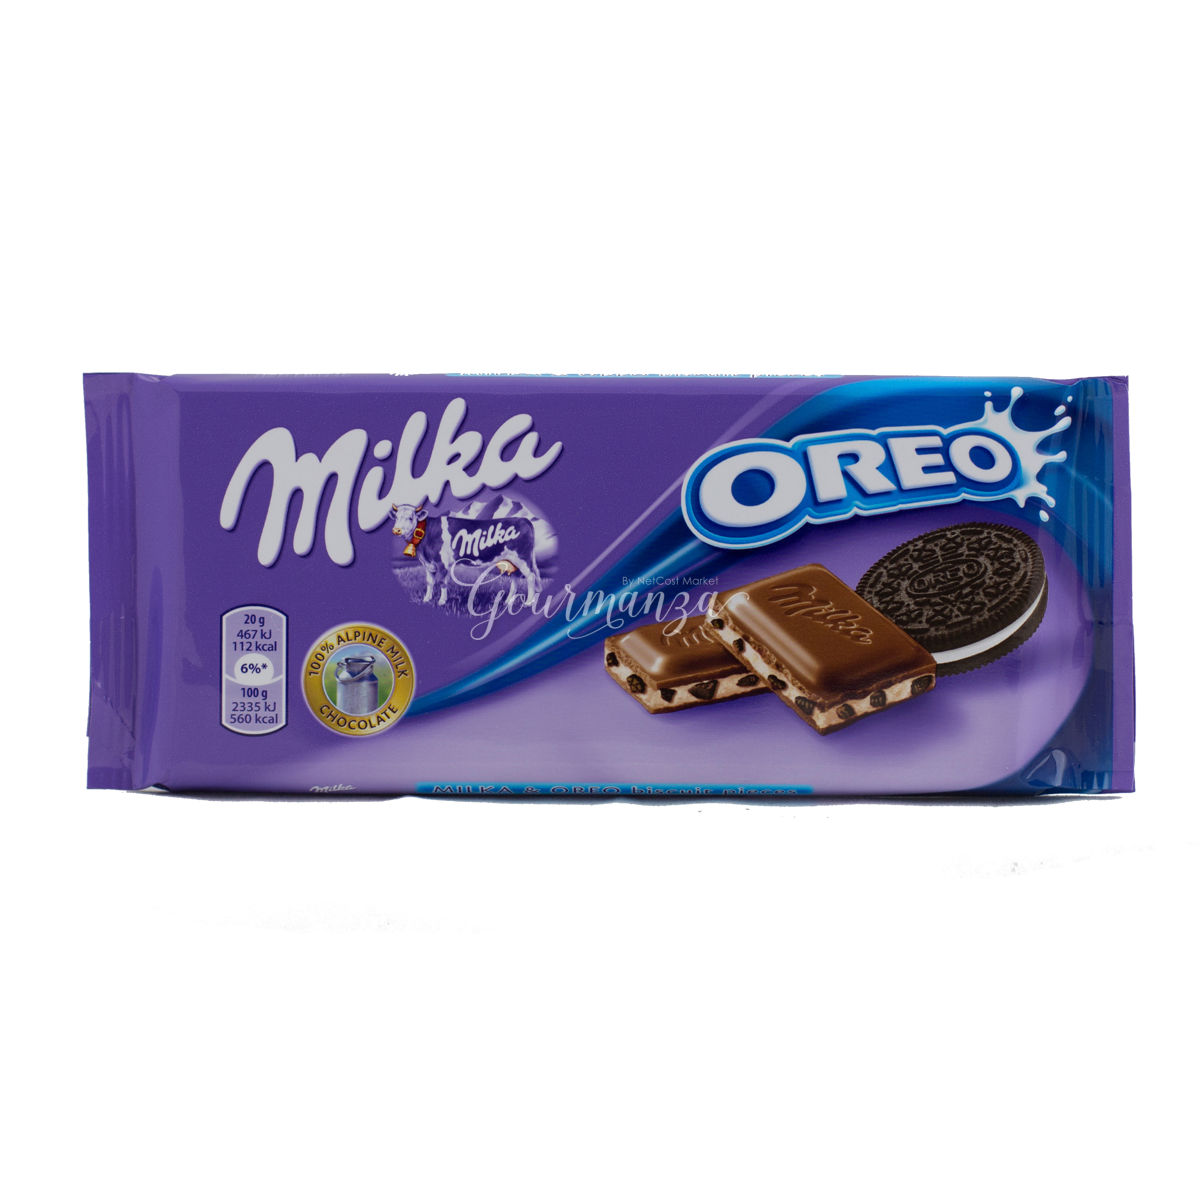 MILKA 100g With Oreo Cookies Chocolate